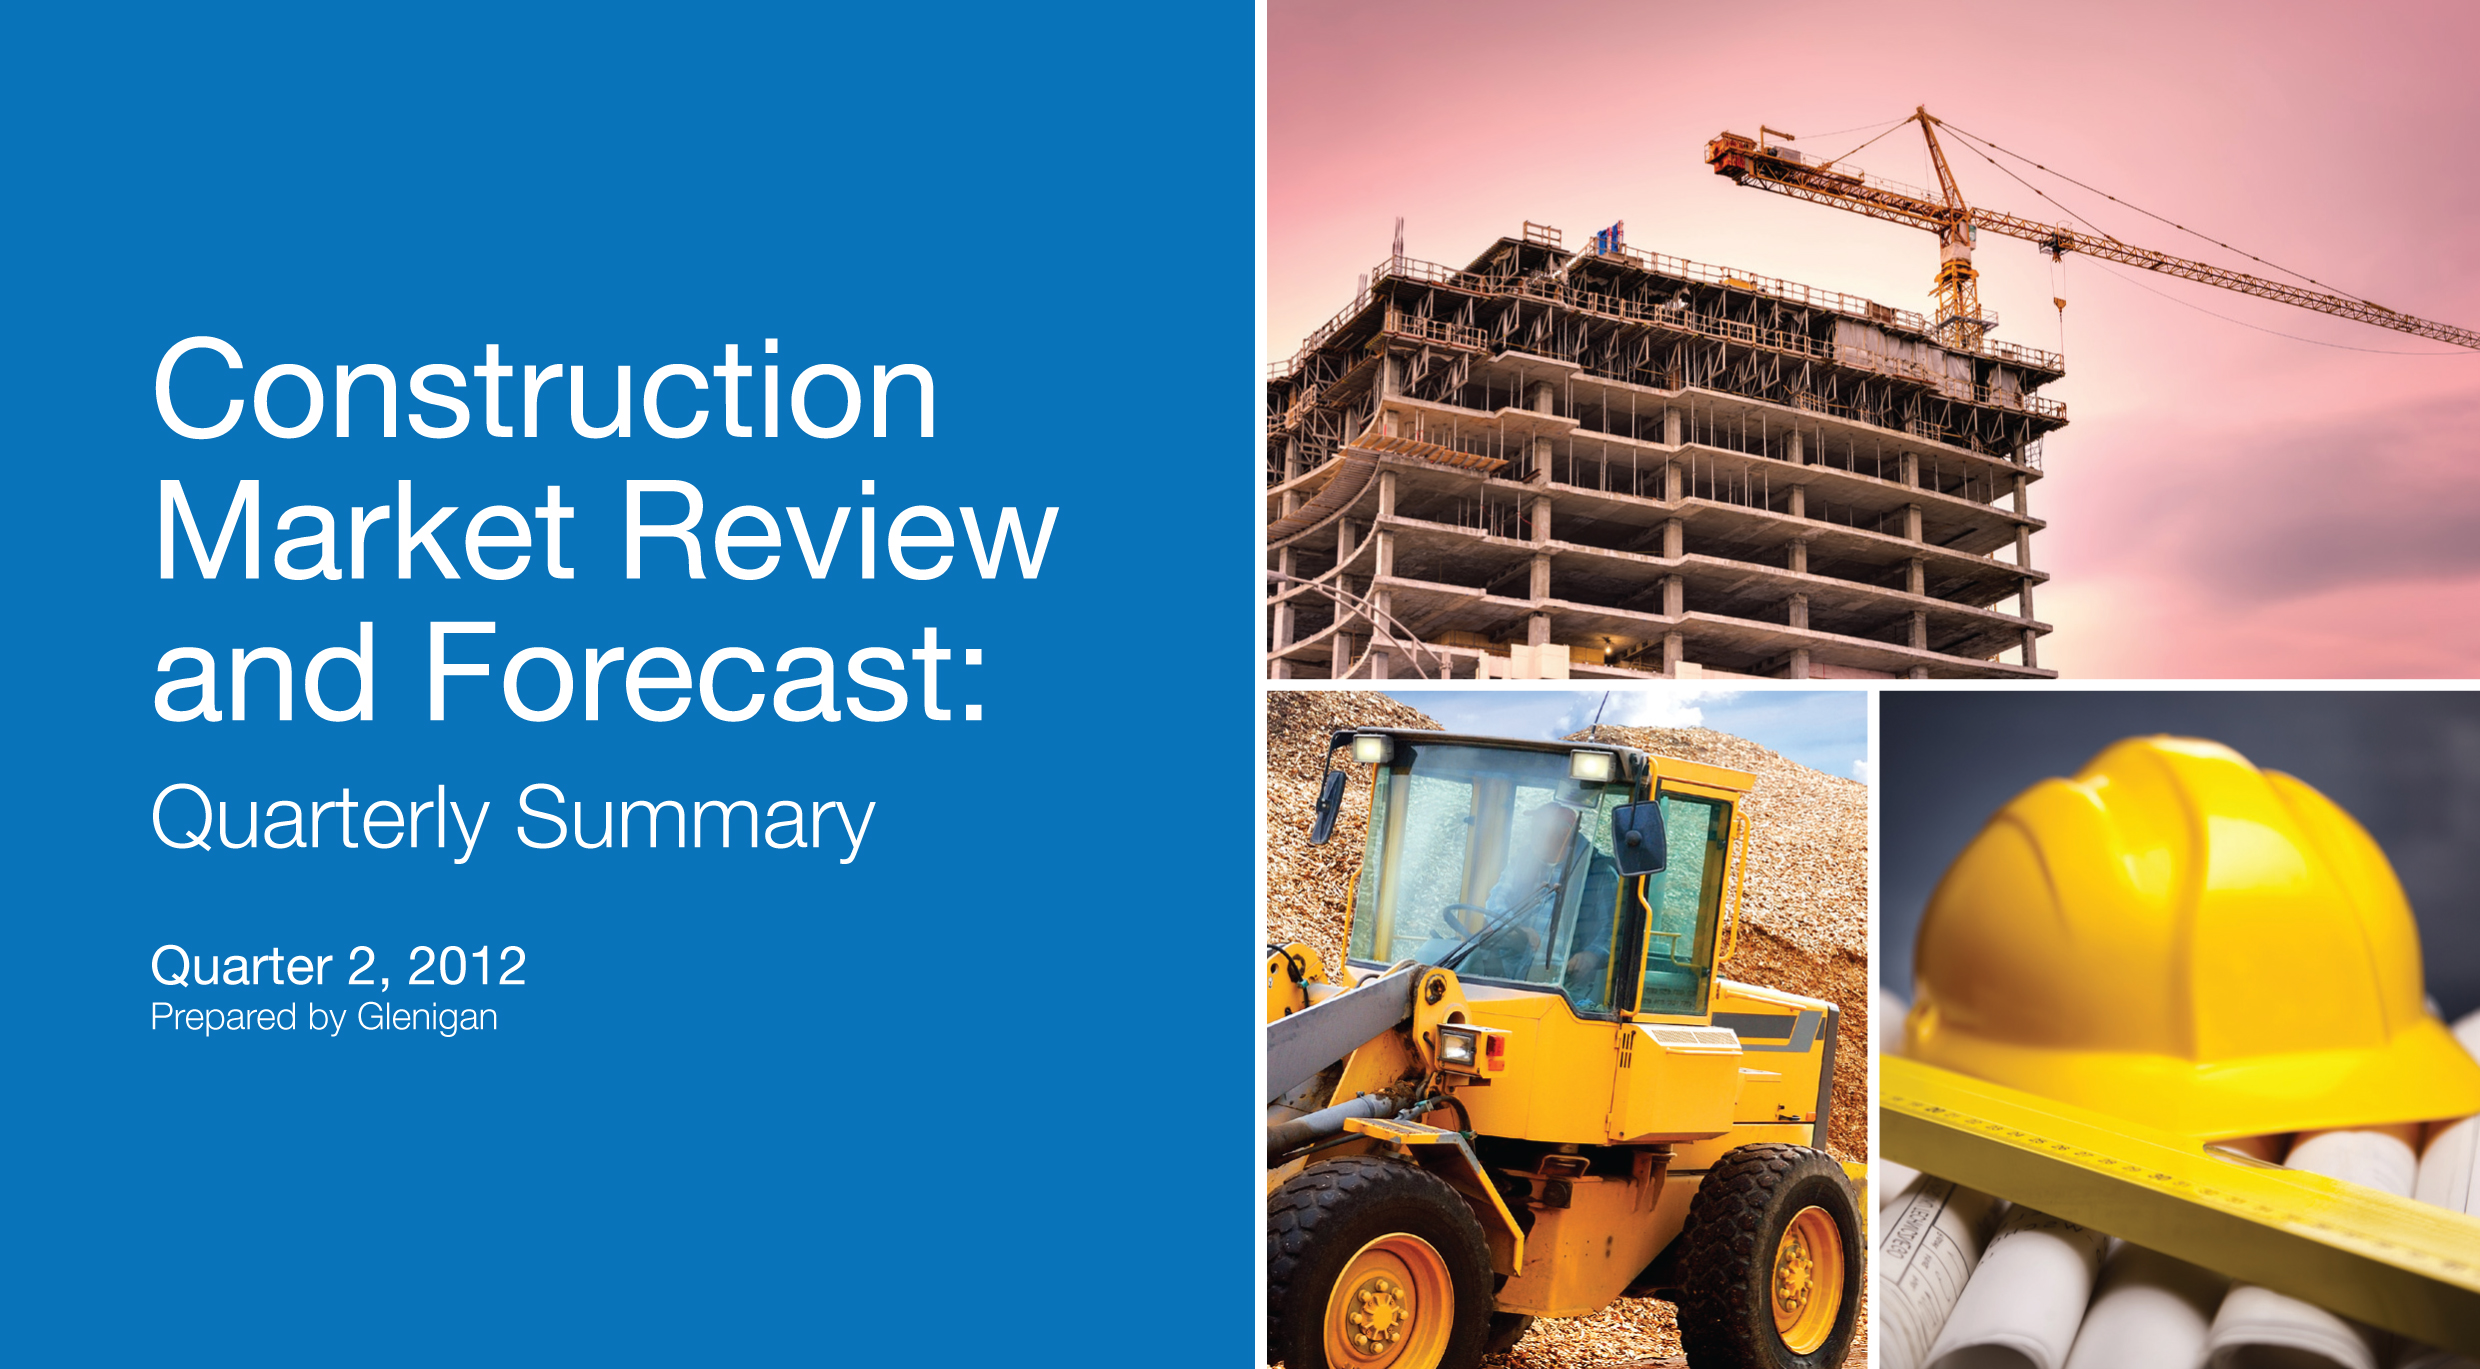 analysis of construction industry in kazakhstan Civil engineering construction market in cis countries 2017  for the civil  engineering segments of construction industries in russia, ukraine and  kazakhstan.